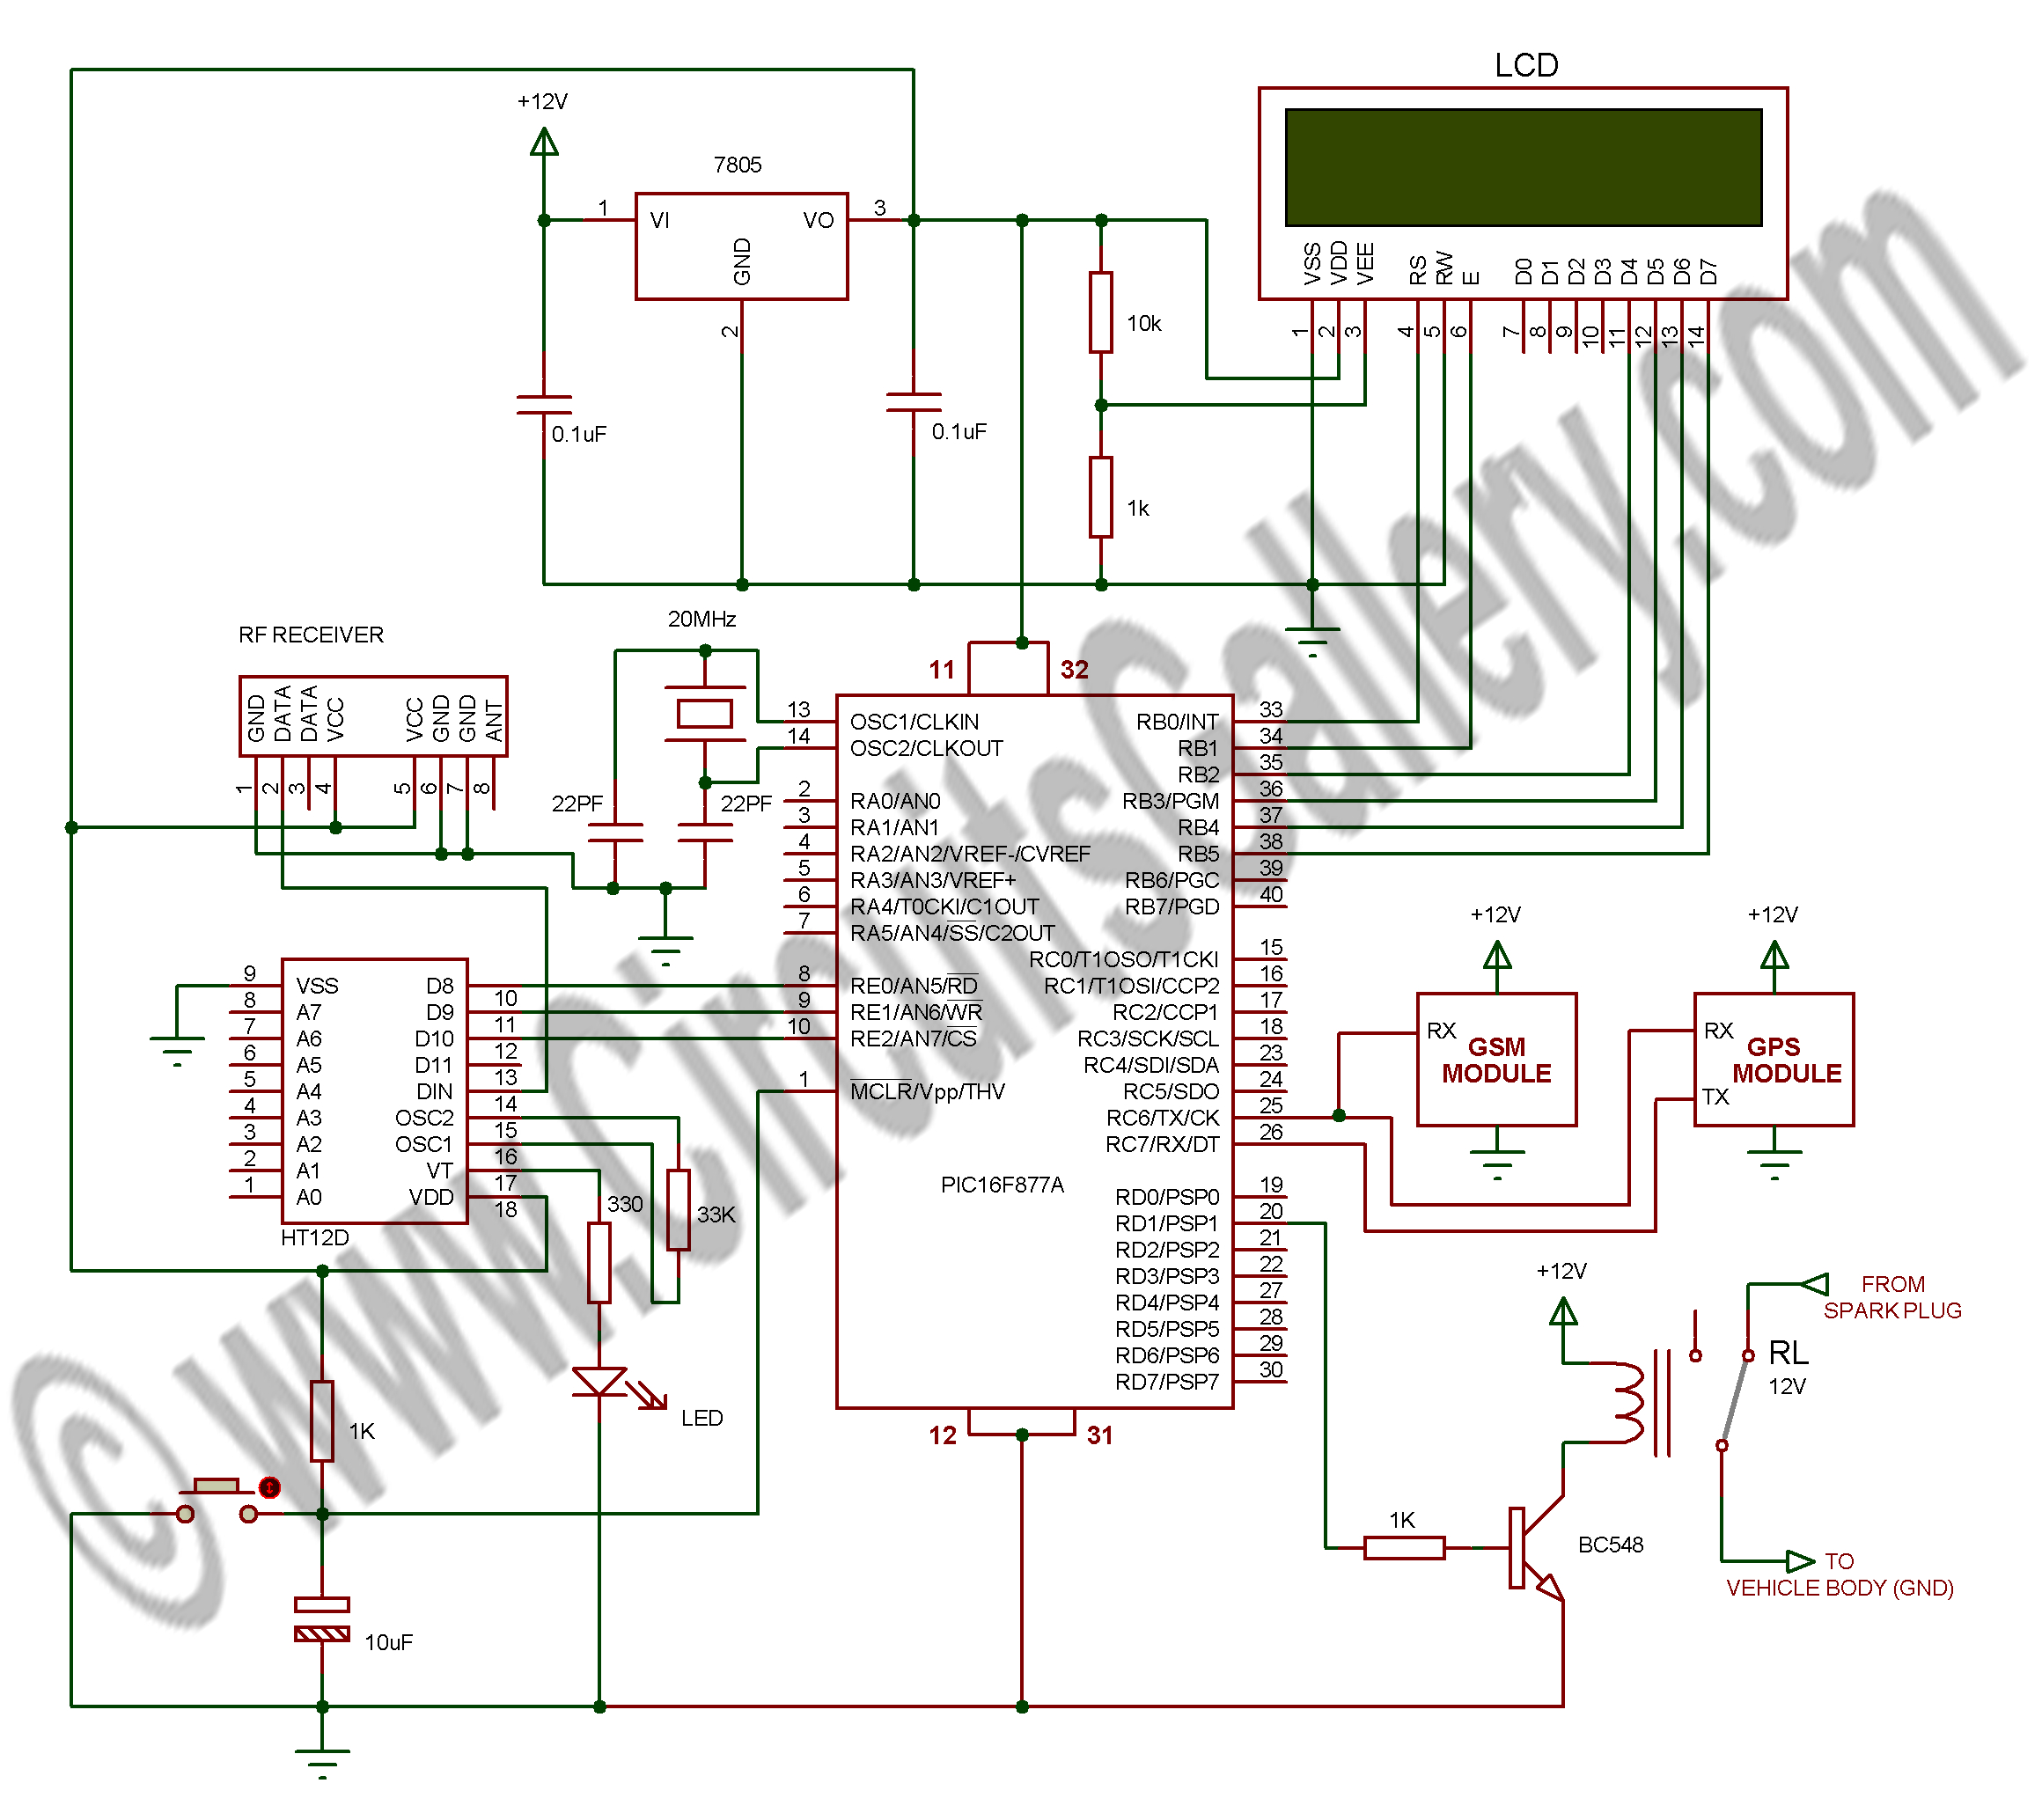 400w hps ballast wiring diagram Collection-High Pressure sodium Lamp Wiring Diagram Unique Delighted Electronic Circuit Project Electrical Circuit 19-n